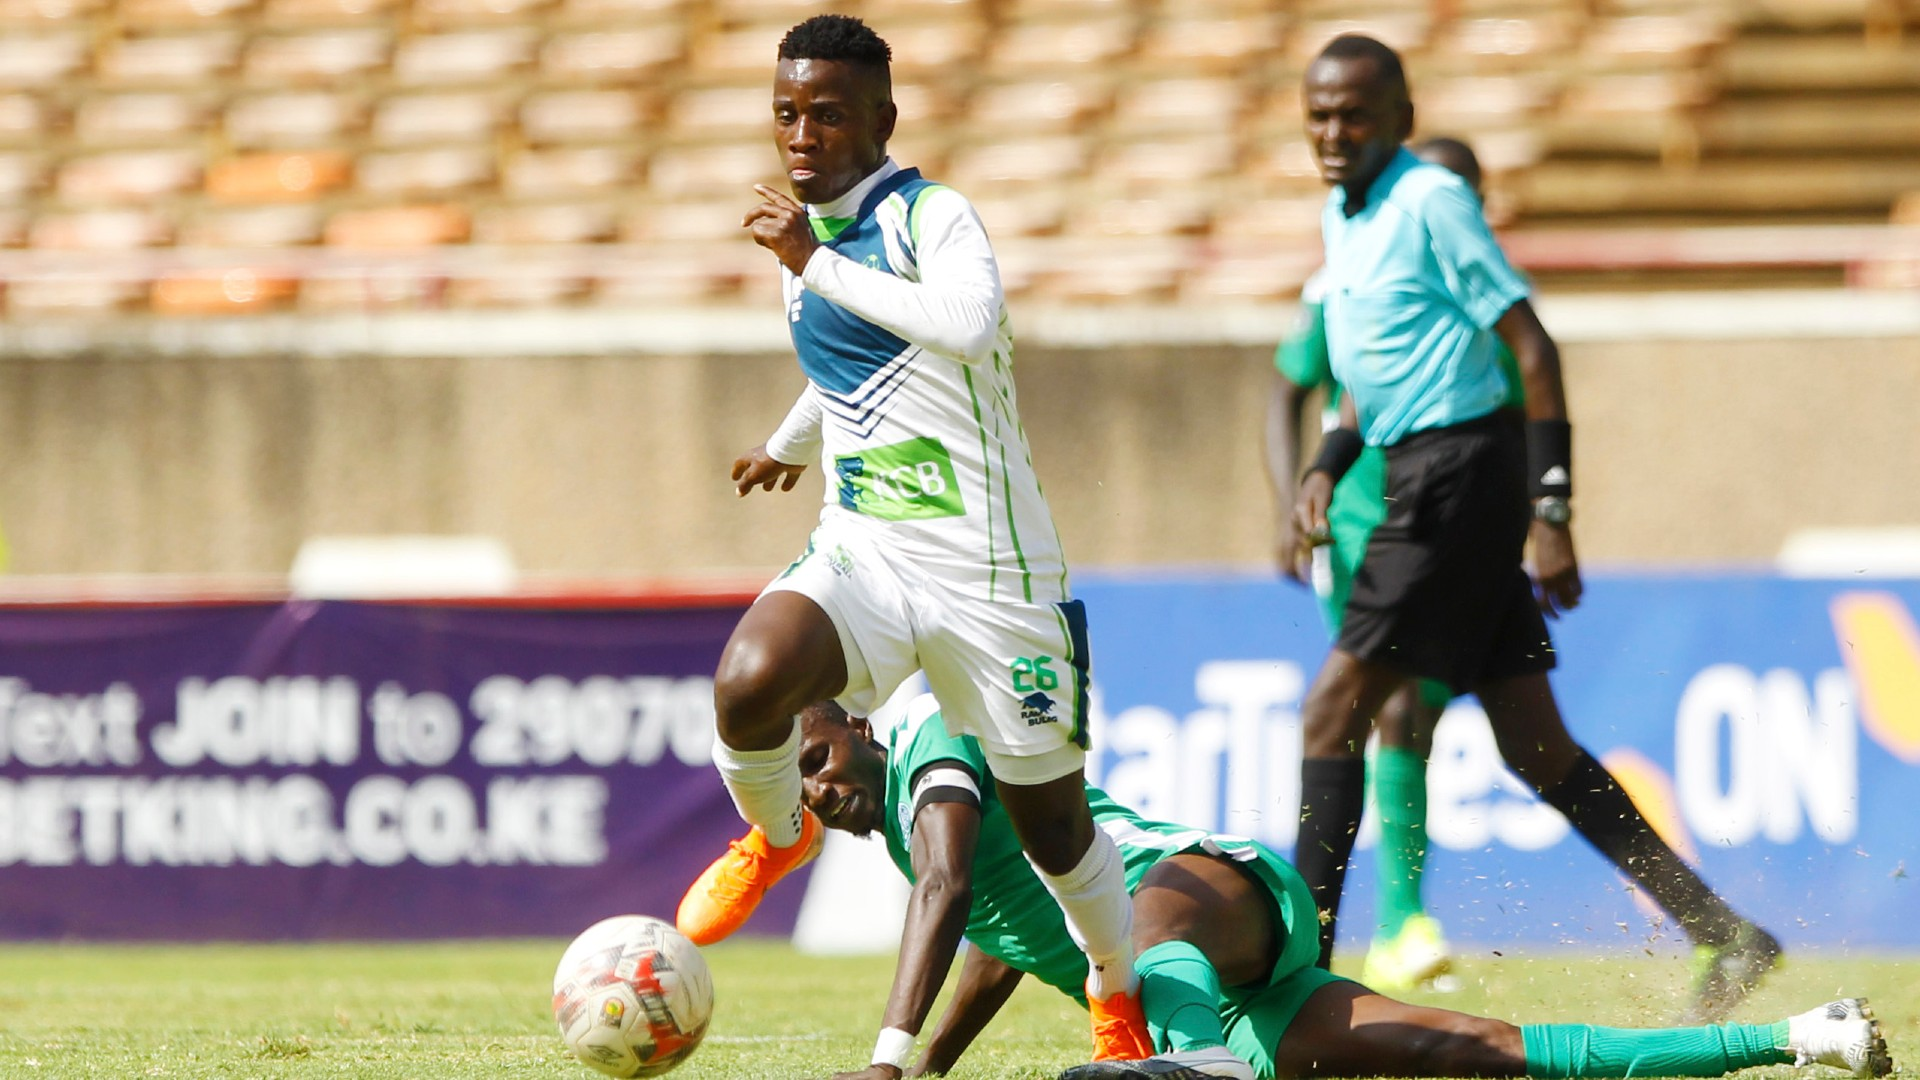 KCB 0-0 Gor Mahia: Advantage Tusker as K'Ogalo stop Bankers from going top